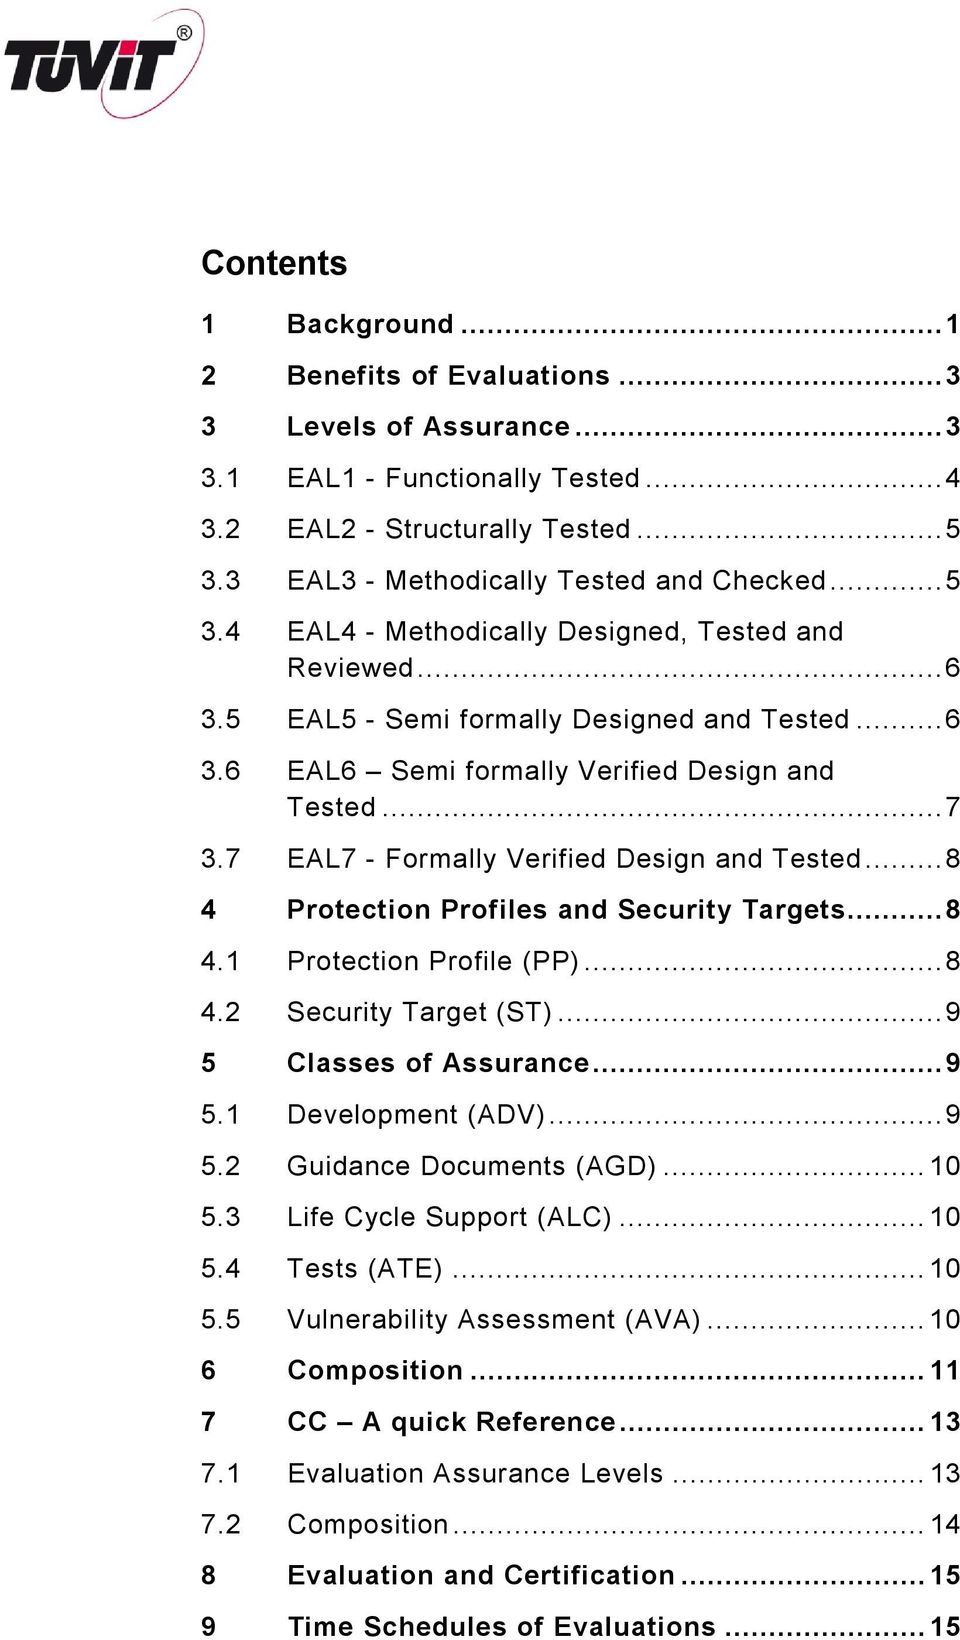 7 EAL7 - Formally Verified Design and Tested... 8 4 Protection Profiles and Security Targets... 8 4.1 Protection Profile (PP)... 8 4.2 Security Target (ST)... 9 5 Classes of Assurance... 9 5.1 Development (ADV).